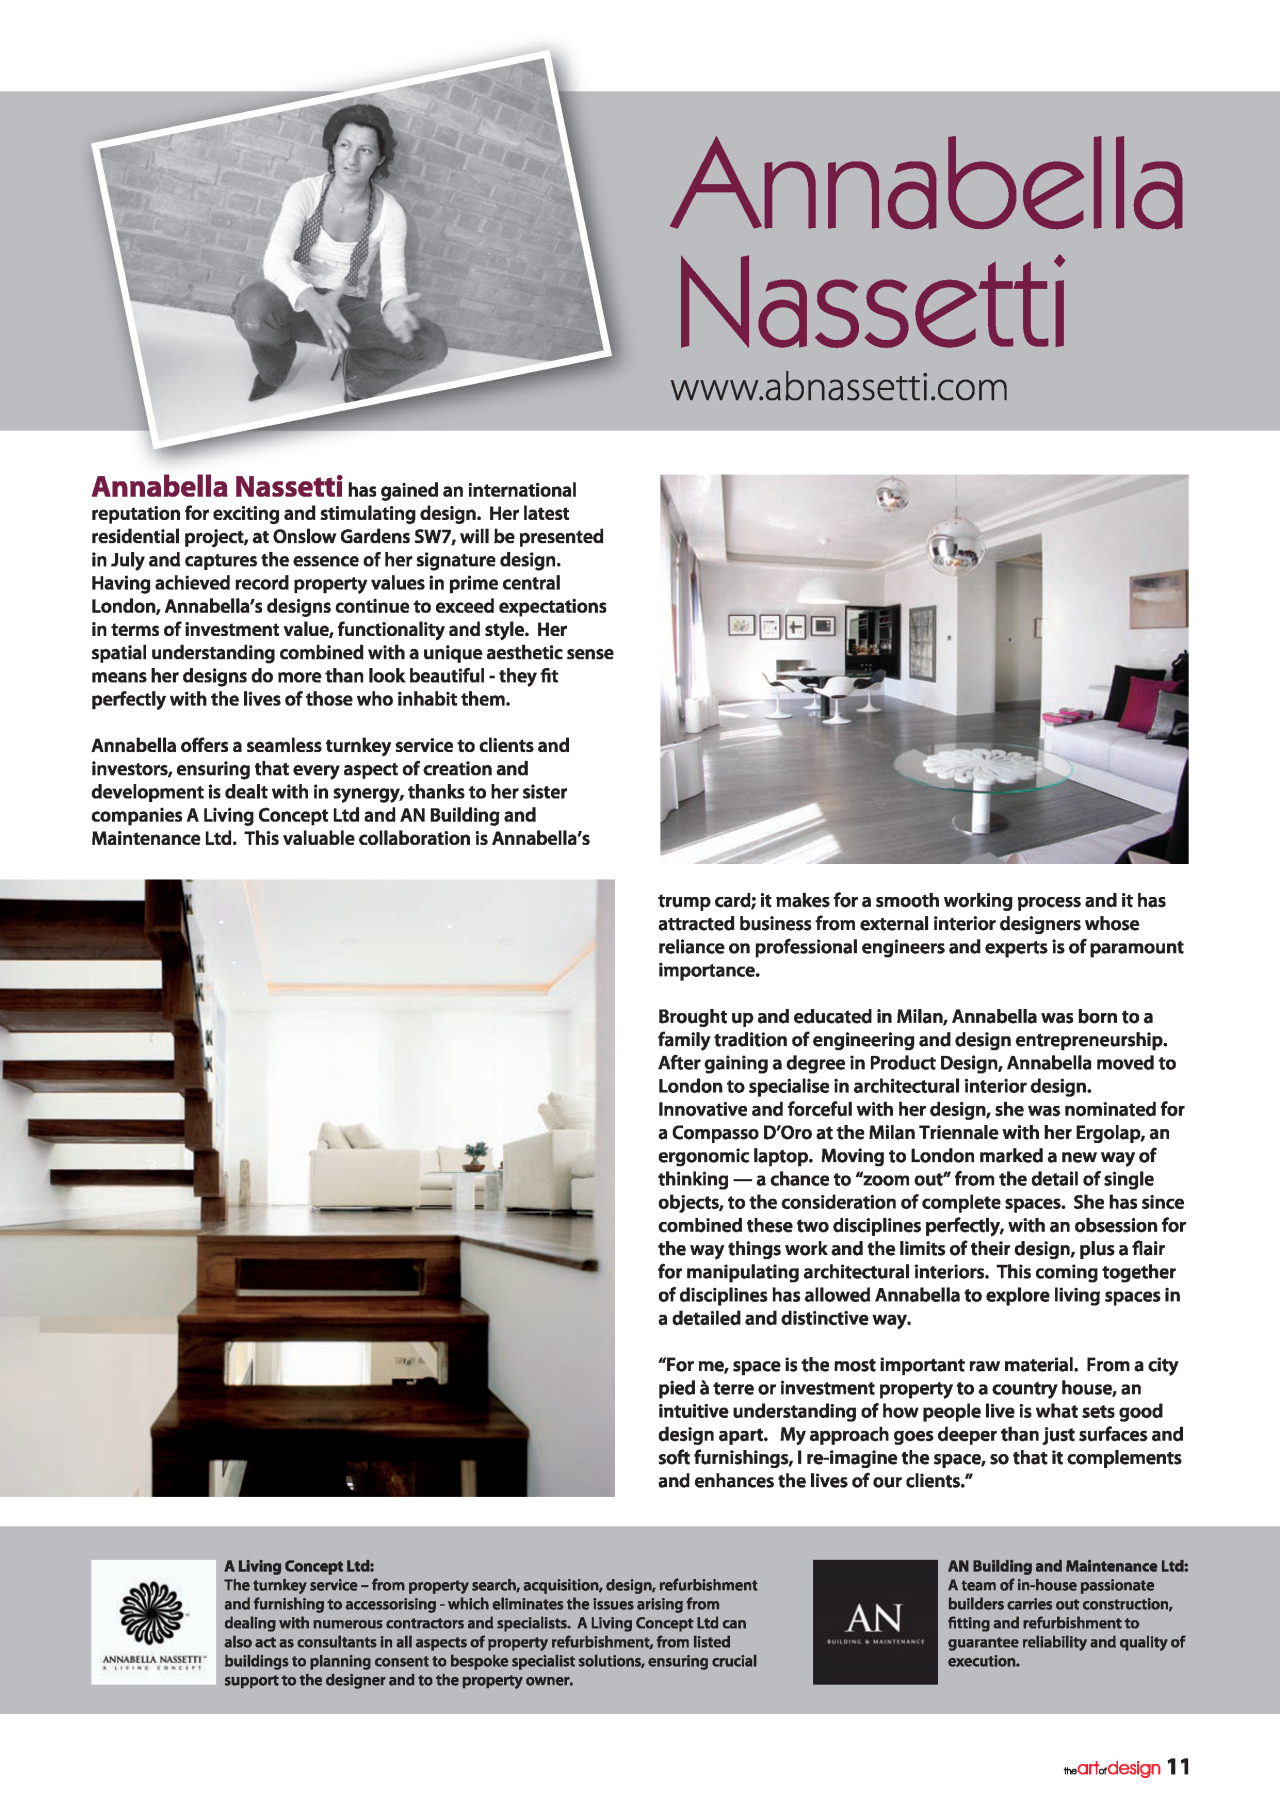 Complete Interior Design Consultant In The Art Design Mag Rh Abnassetti Com  Hotel Interior Design Interior Design News Articles